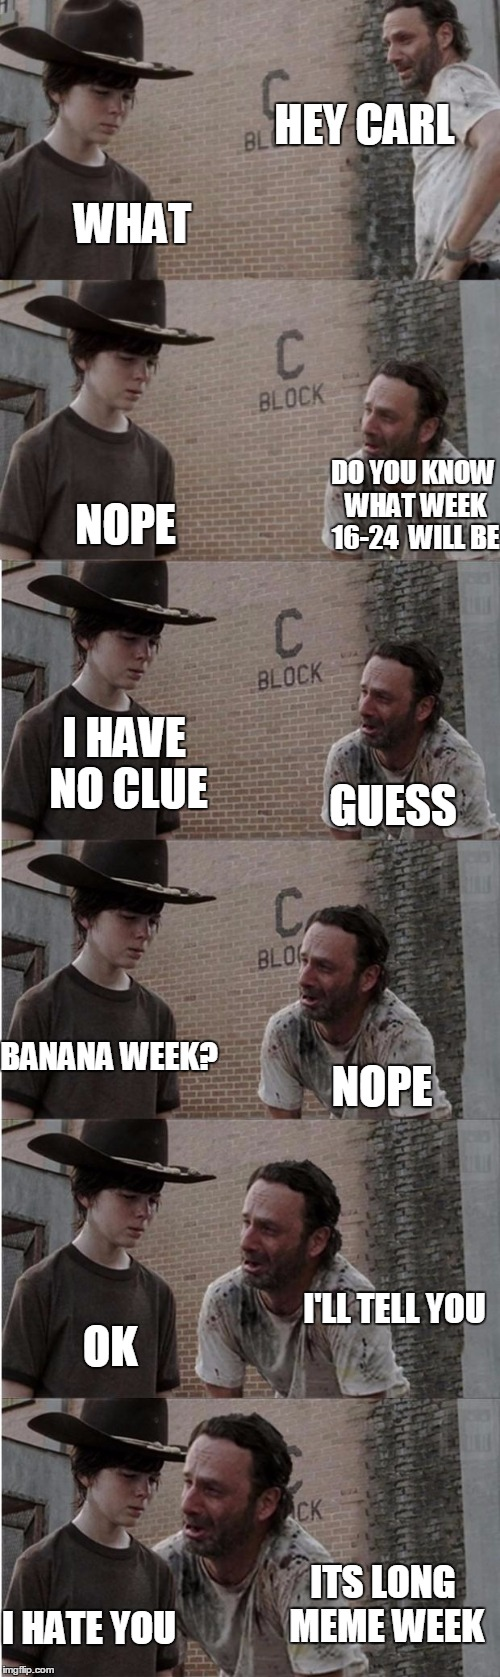 Rick and Carl Longer Meme | HEY CARL WHAT DO YOU KNOW WHAT WEEK 16-24  WILL BE NOPE GUESS I HAVE NO CLUE I'LL TELL YOU NOPE OK BANANA WEEK? I HATE YOU ITS LONG MEME WEE | image tagged in memes,rick and carl longer | made w/ Imgflip meme maker